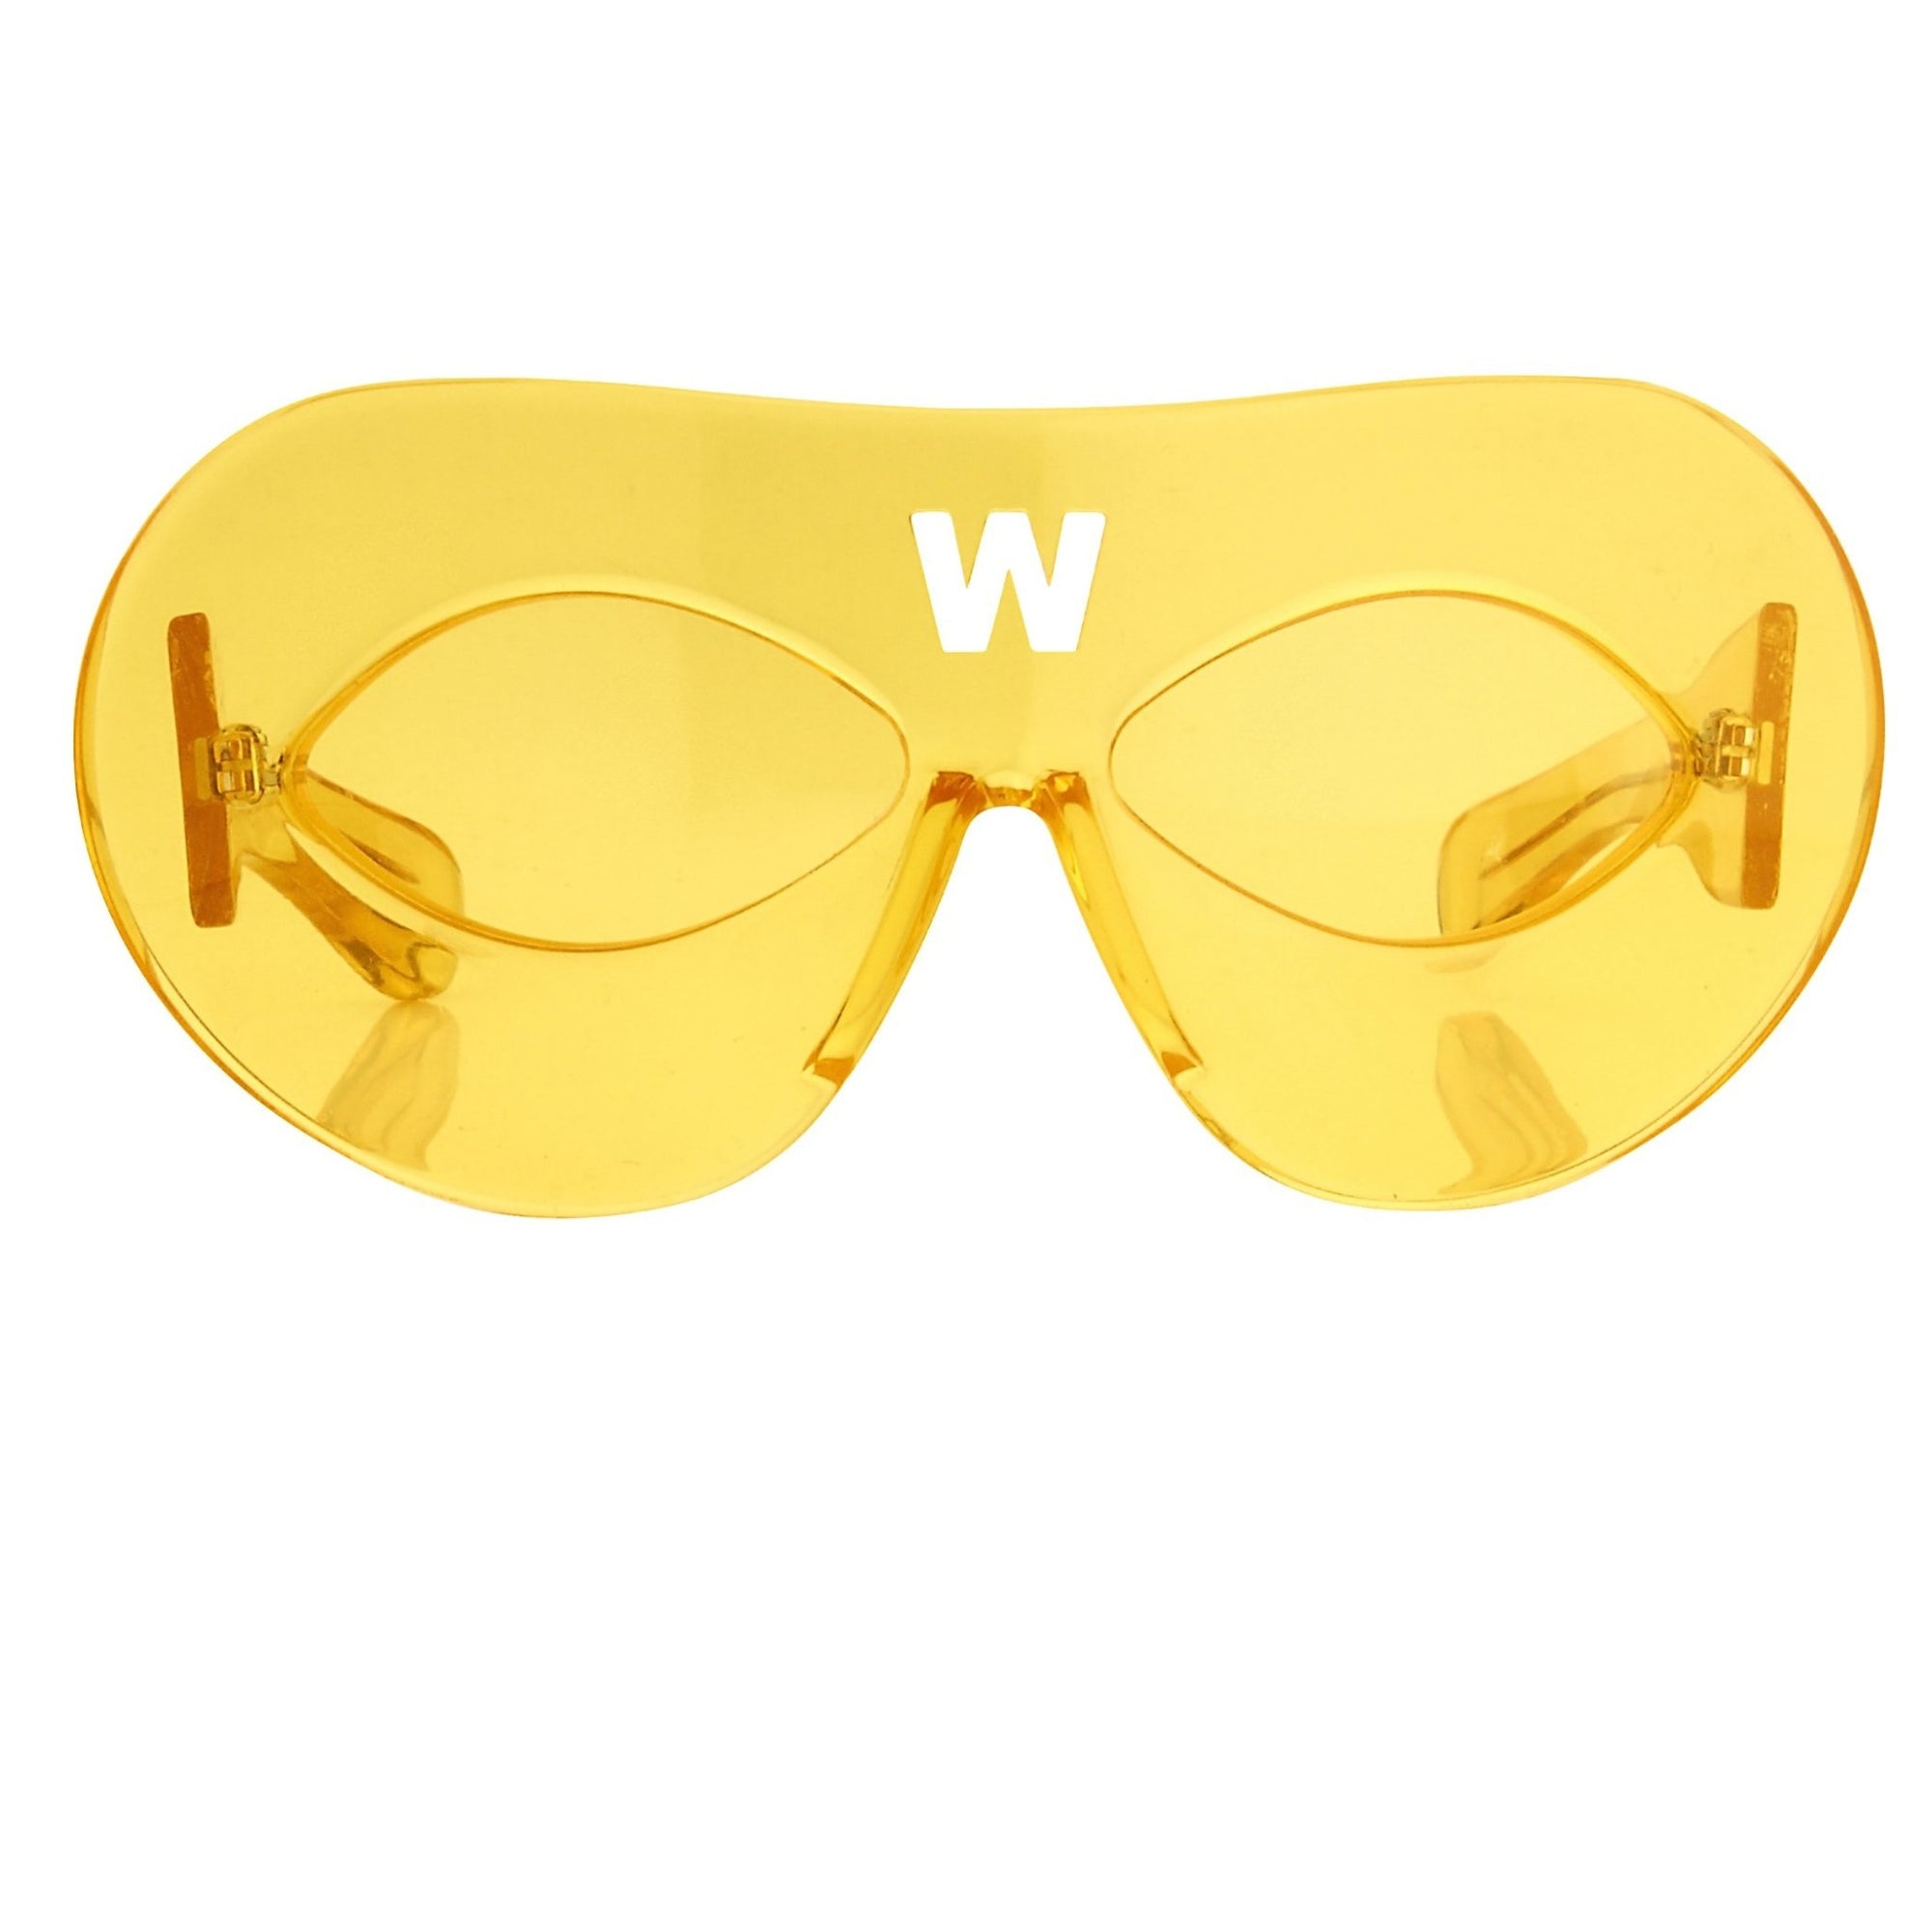 Walter Van Beirendonck Sunglasses Special Frame Yellow and Yellow Lenses - WVB3C3SUN - Watches & Crystals